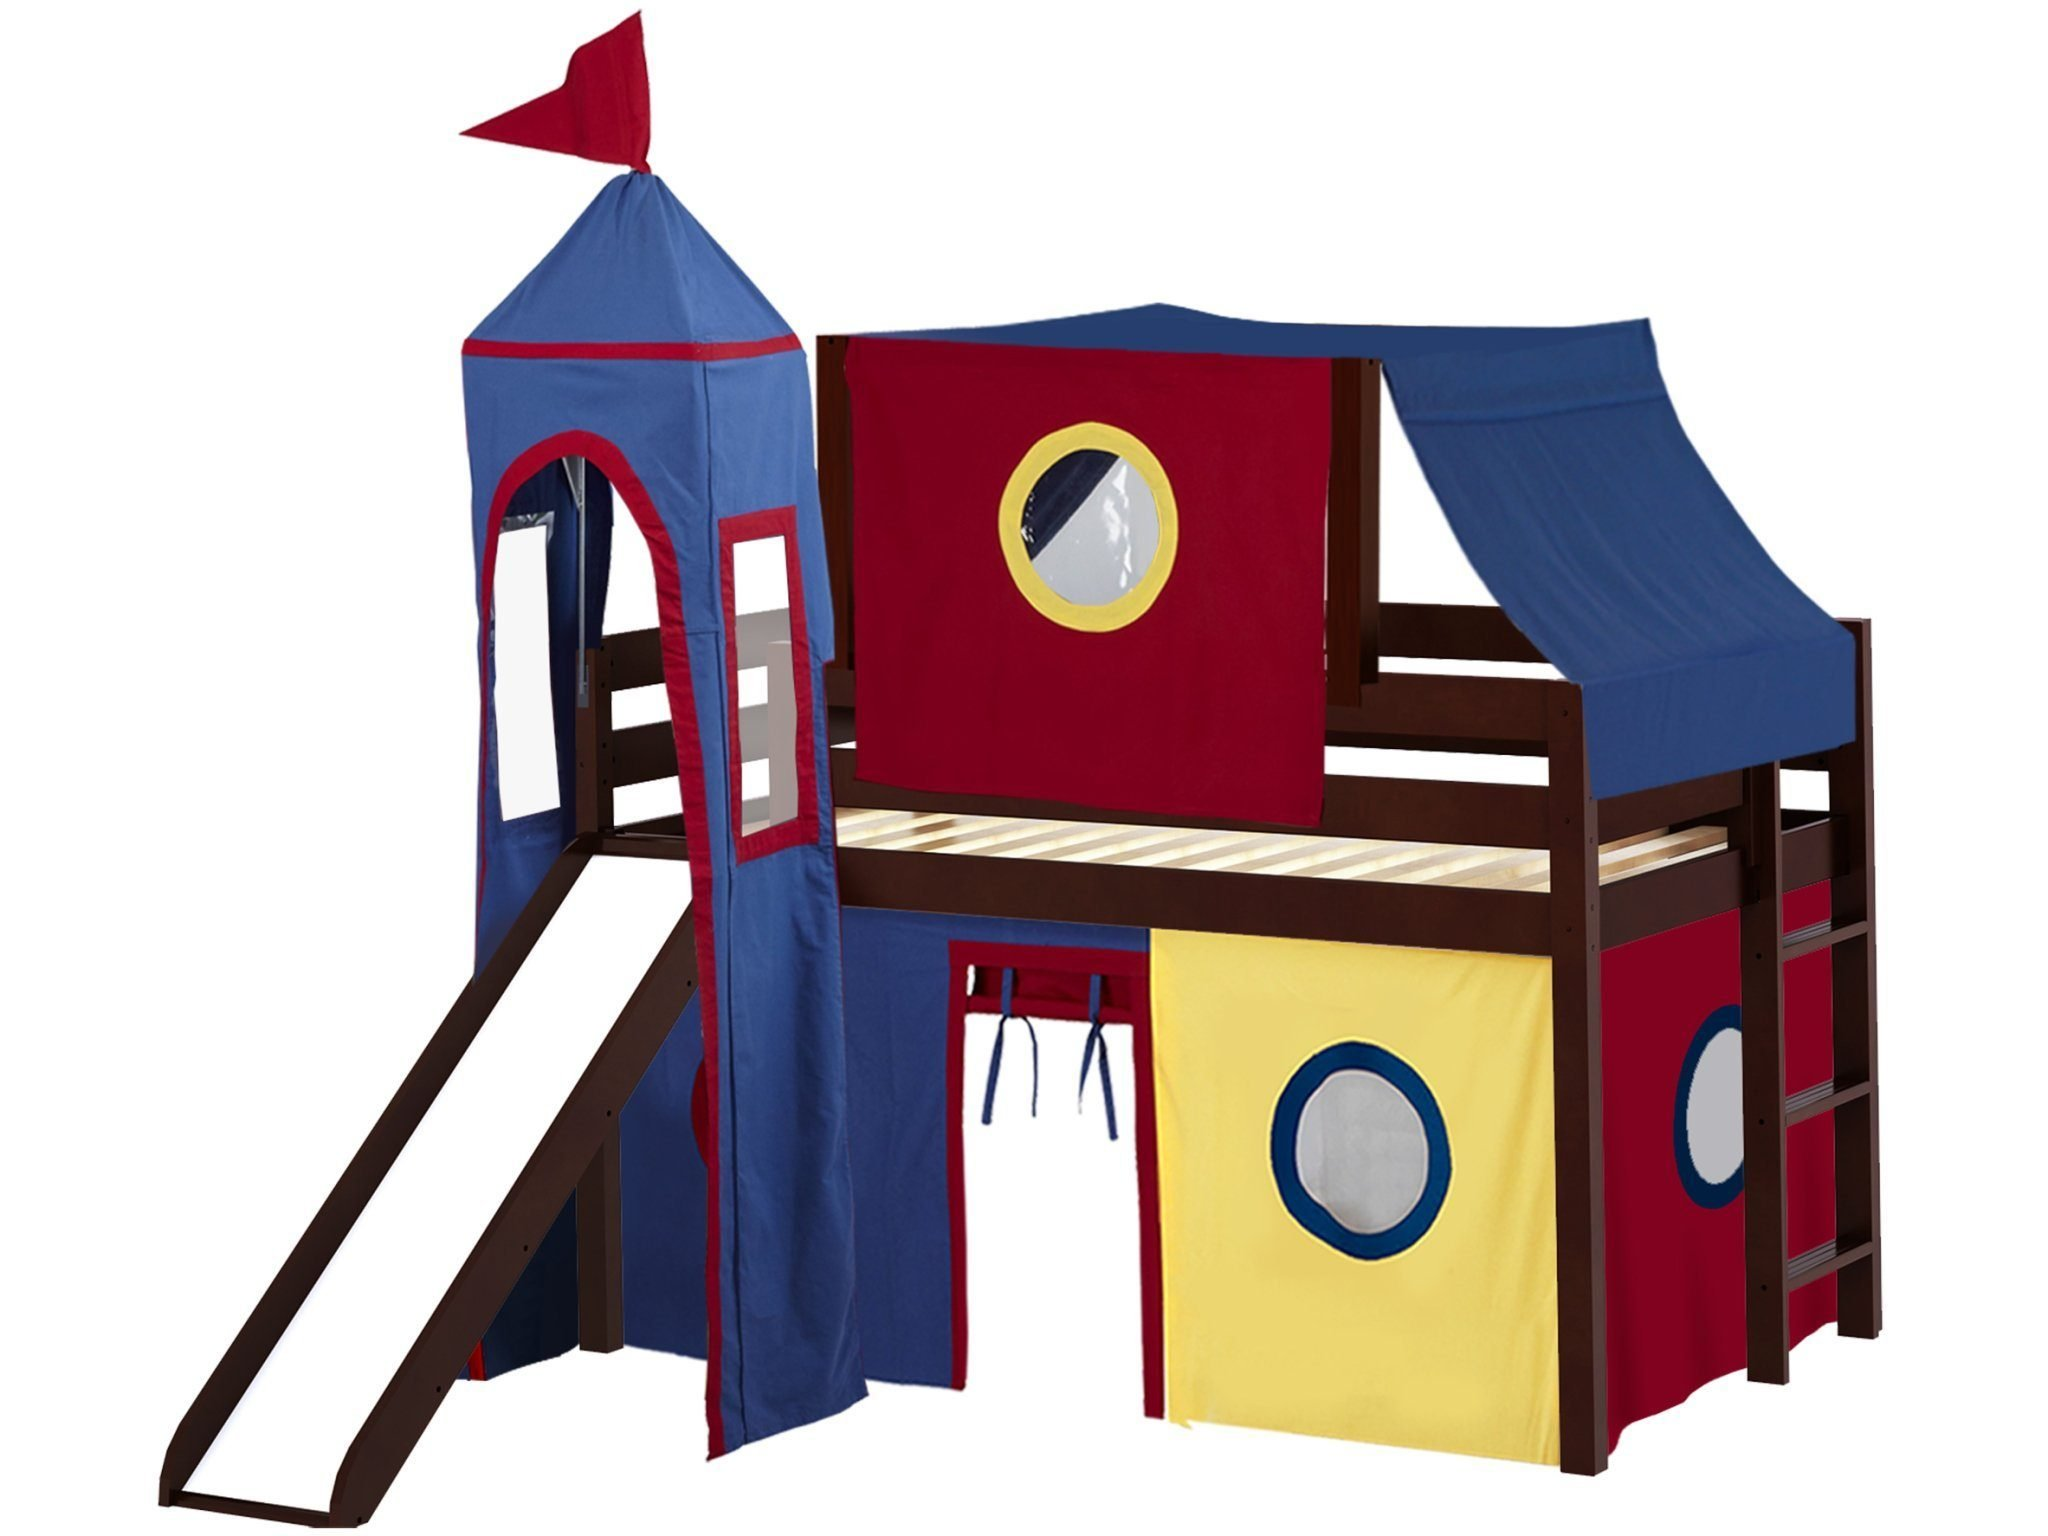 JACKPOT! Castle Low Loft Bed with Slide Red & Blue Tent and Tower, Loft Bed, Twin, Cherry by JACKPOT!